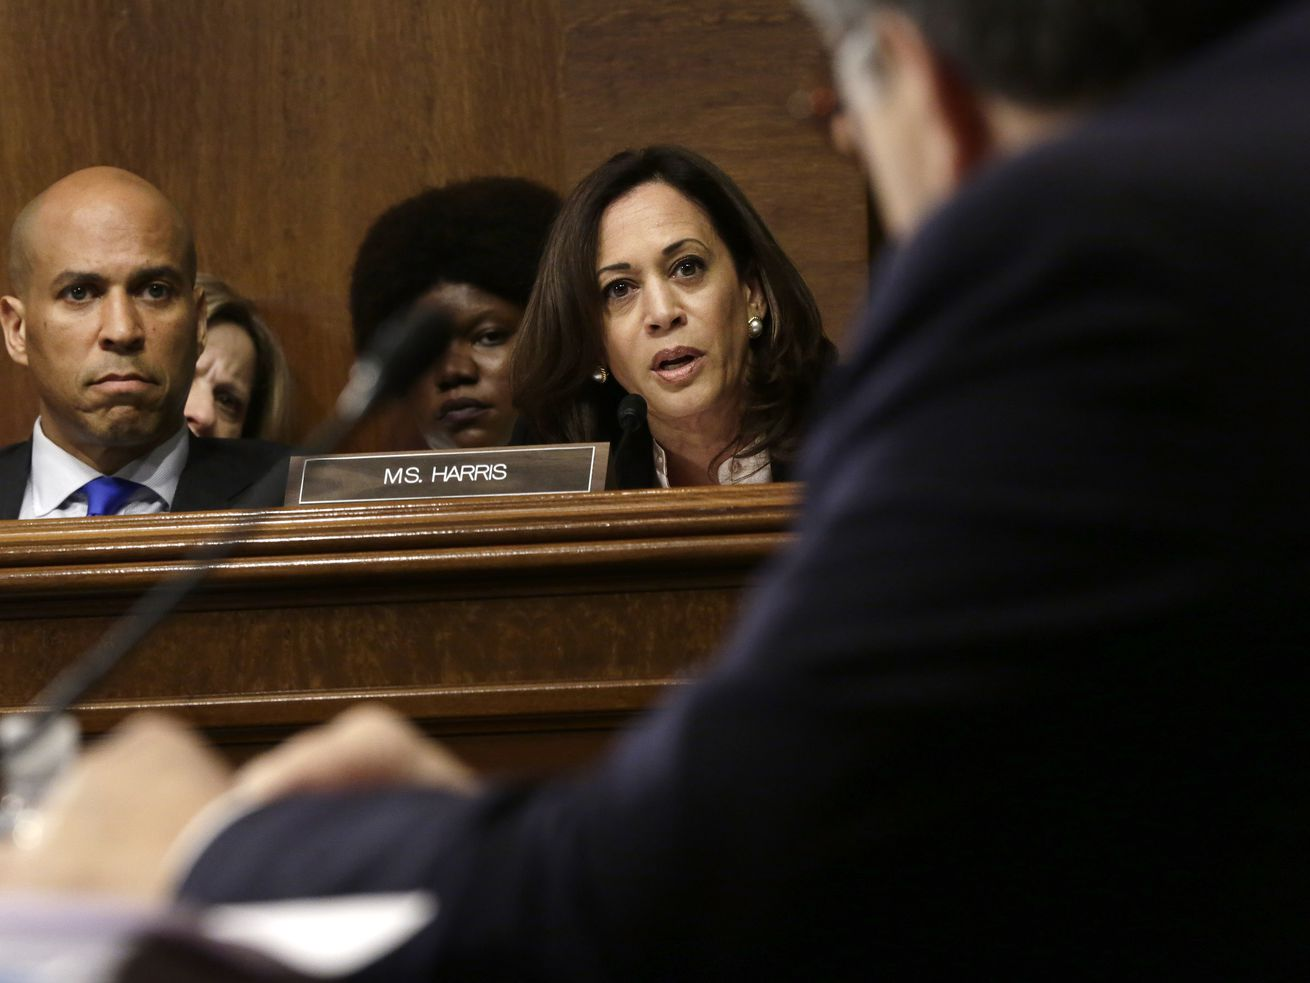 Sen. Kamala Harris (D-CA) speaks and Sen. Cory Booker (D-NJ) listens as Attorney General William Barr testifies before the Senate Judiciary Committee May 1, 2019, in Washington, DC.